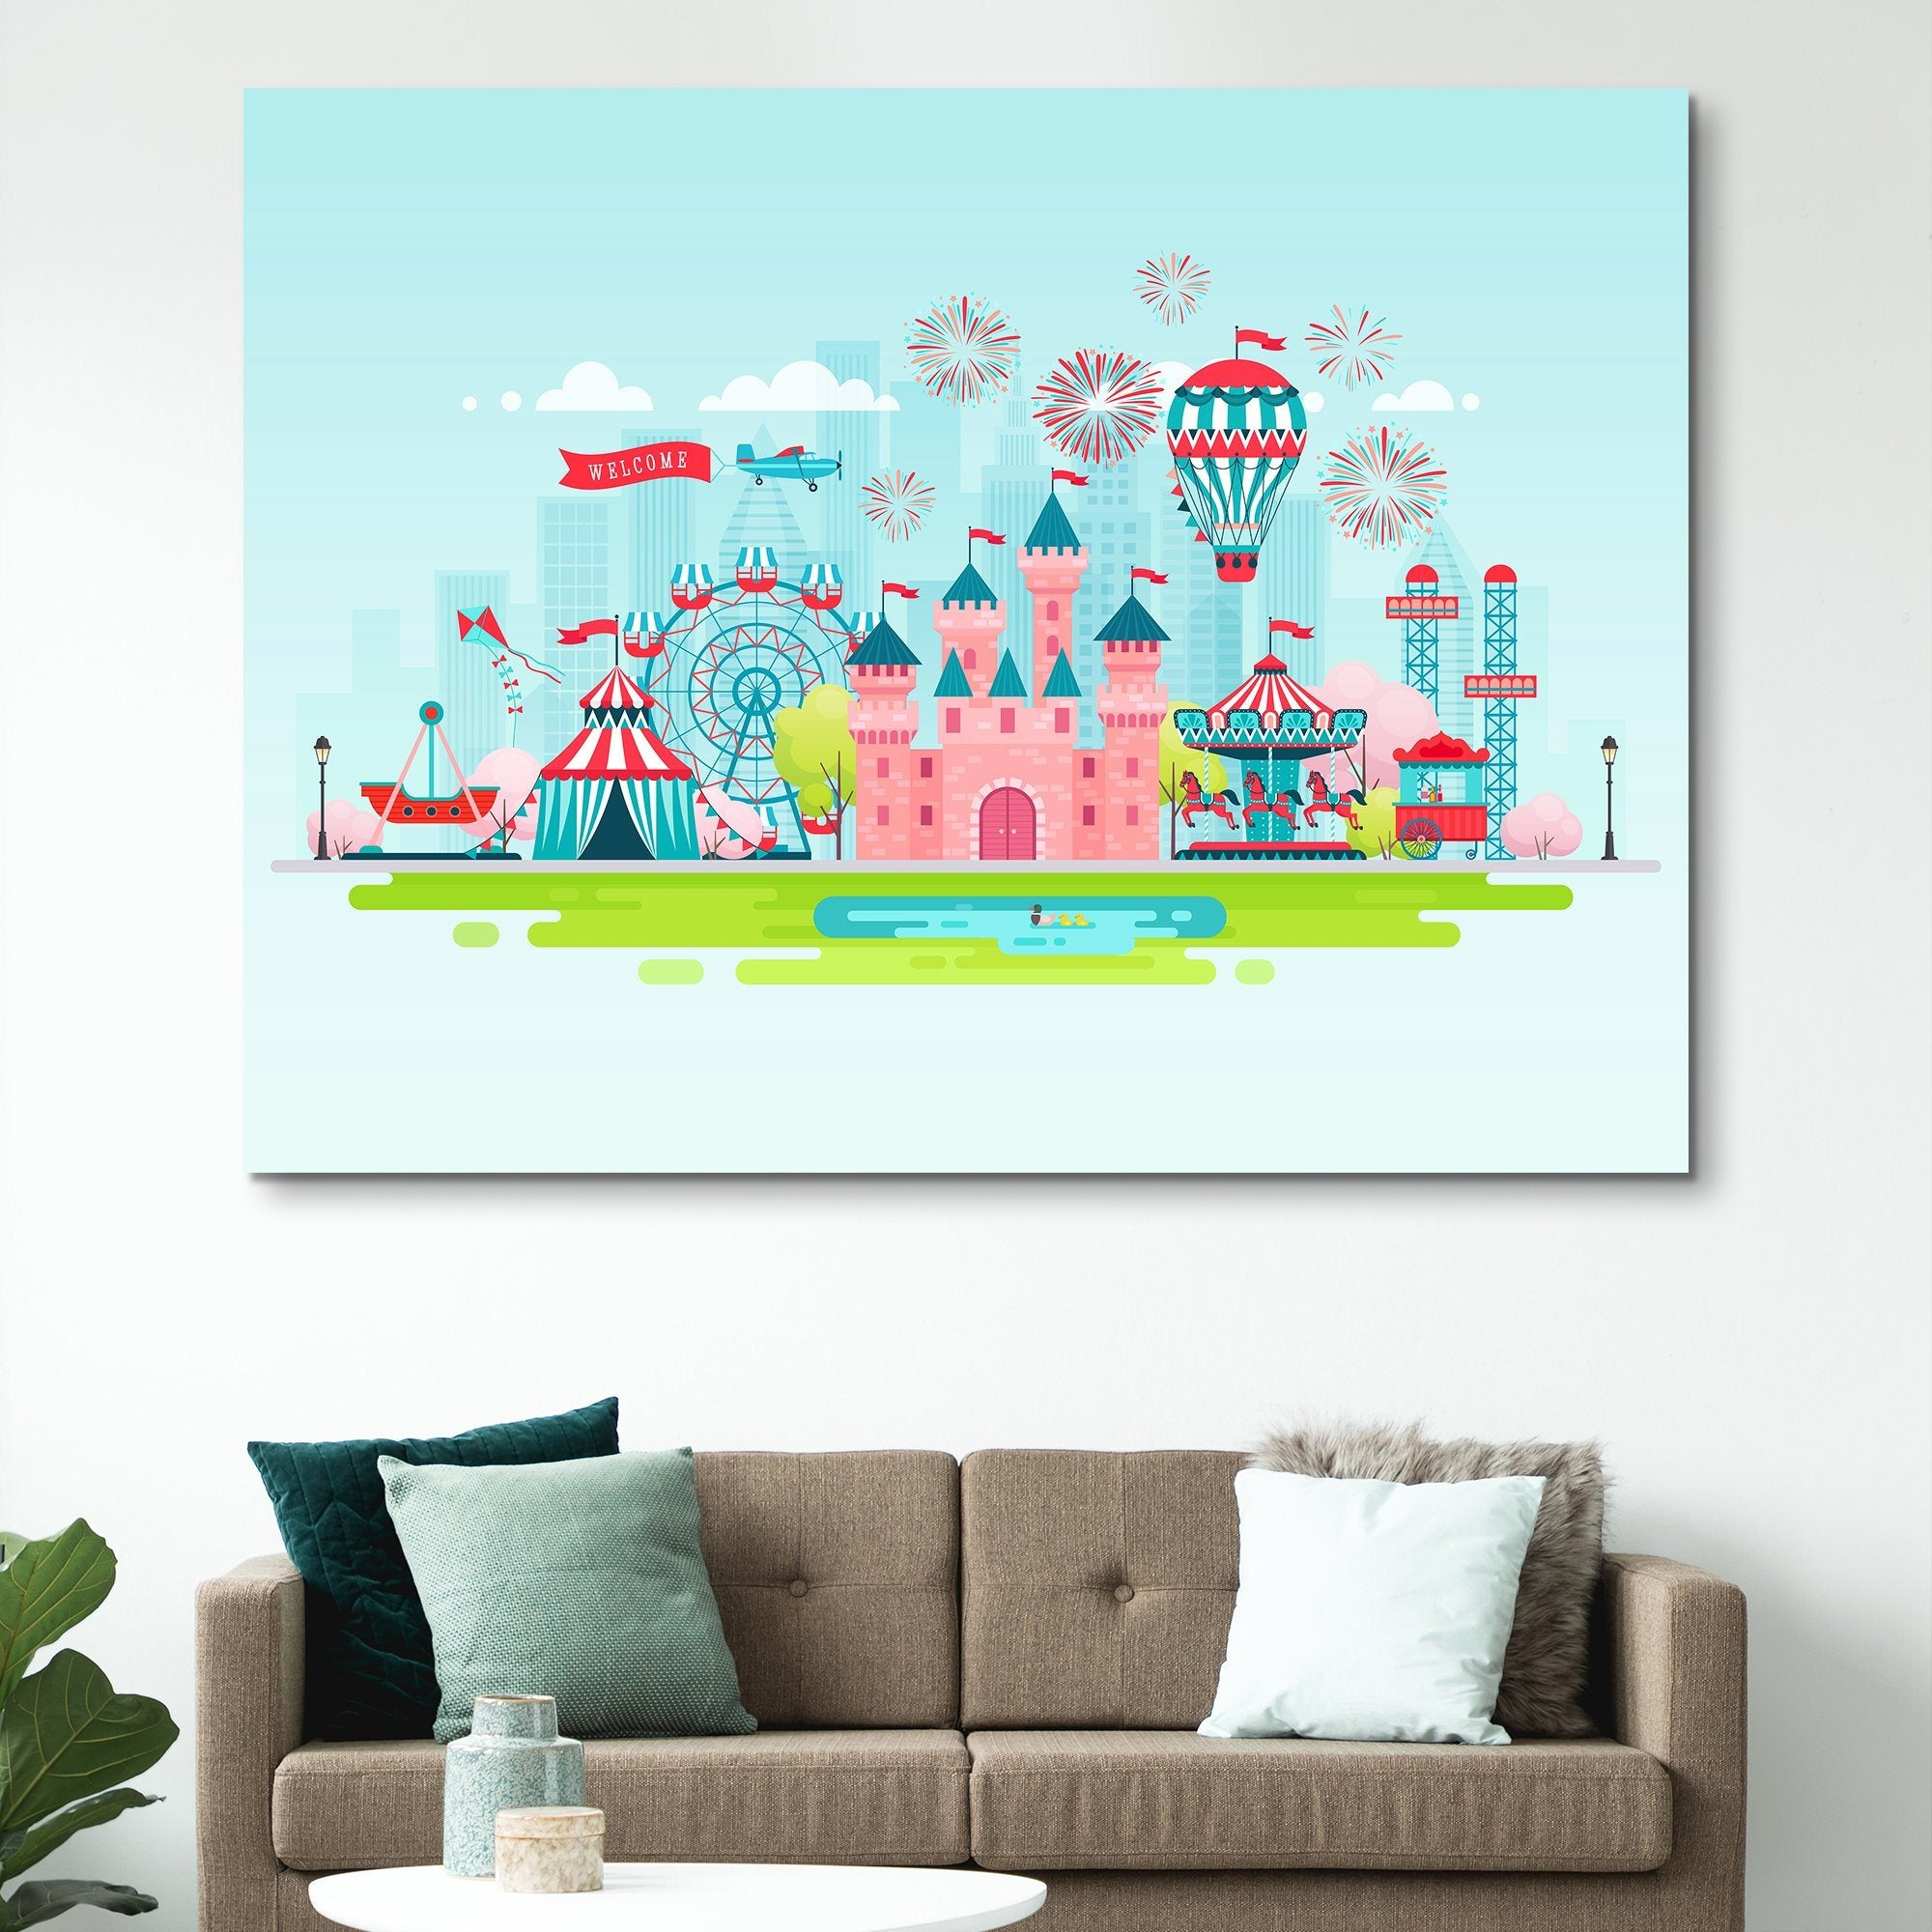 Kids Zone wall art